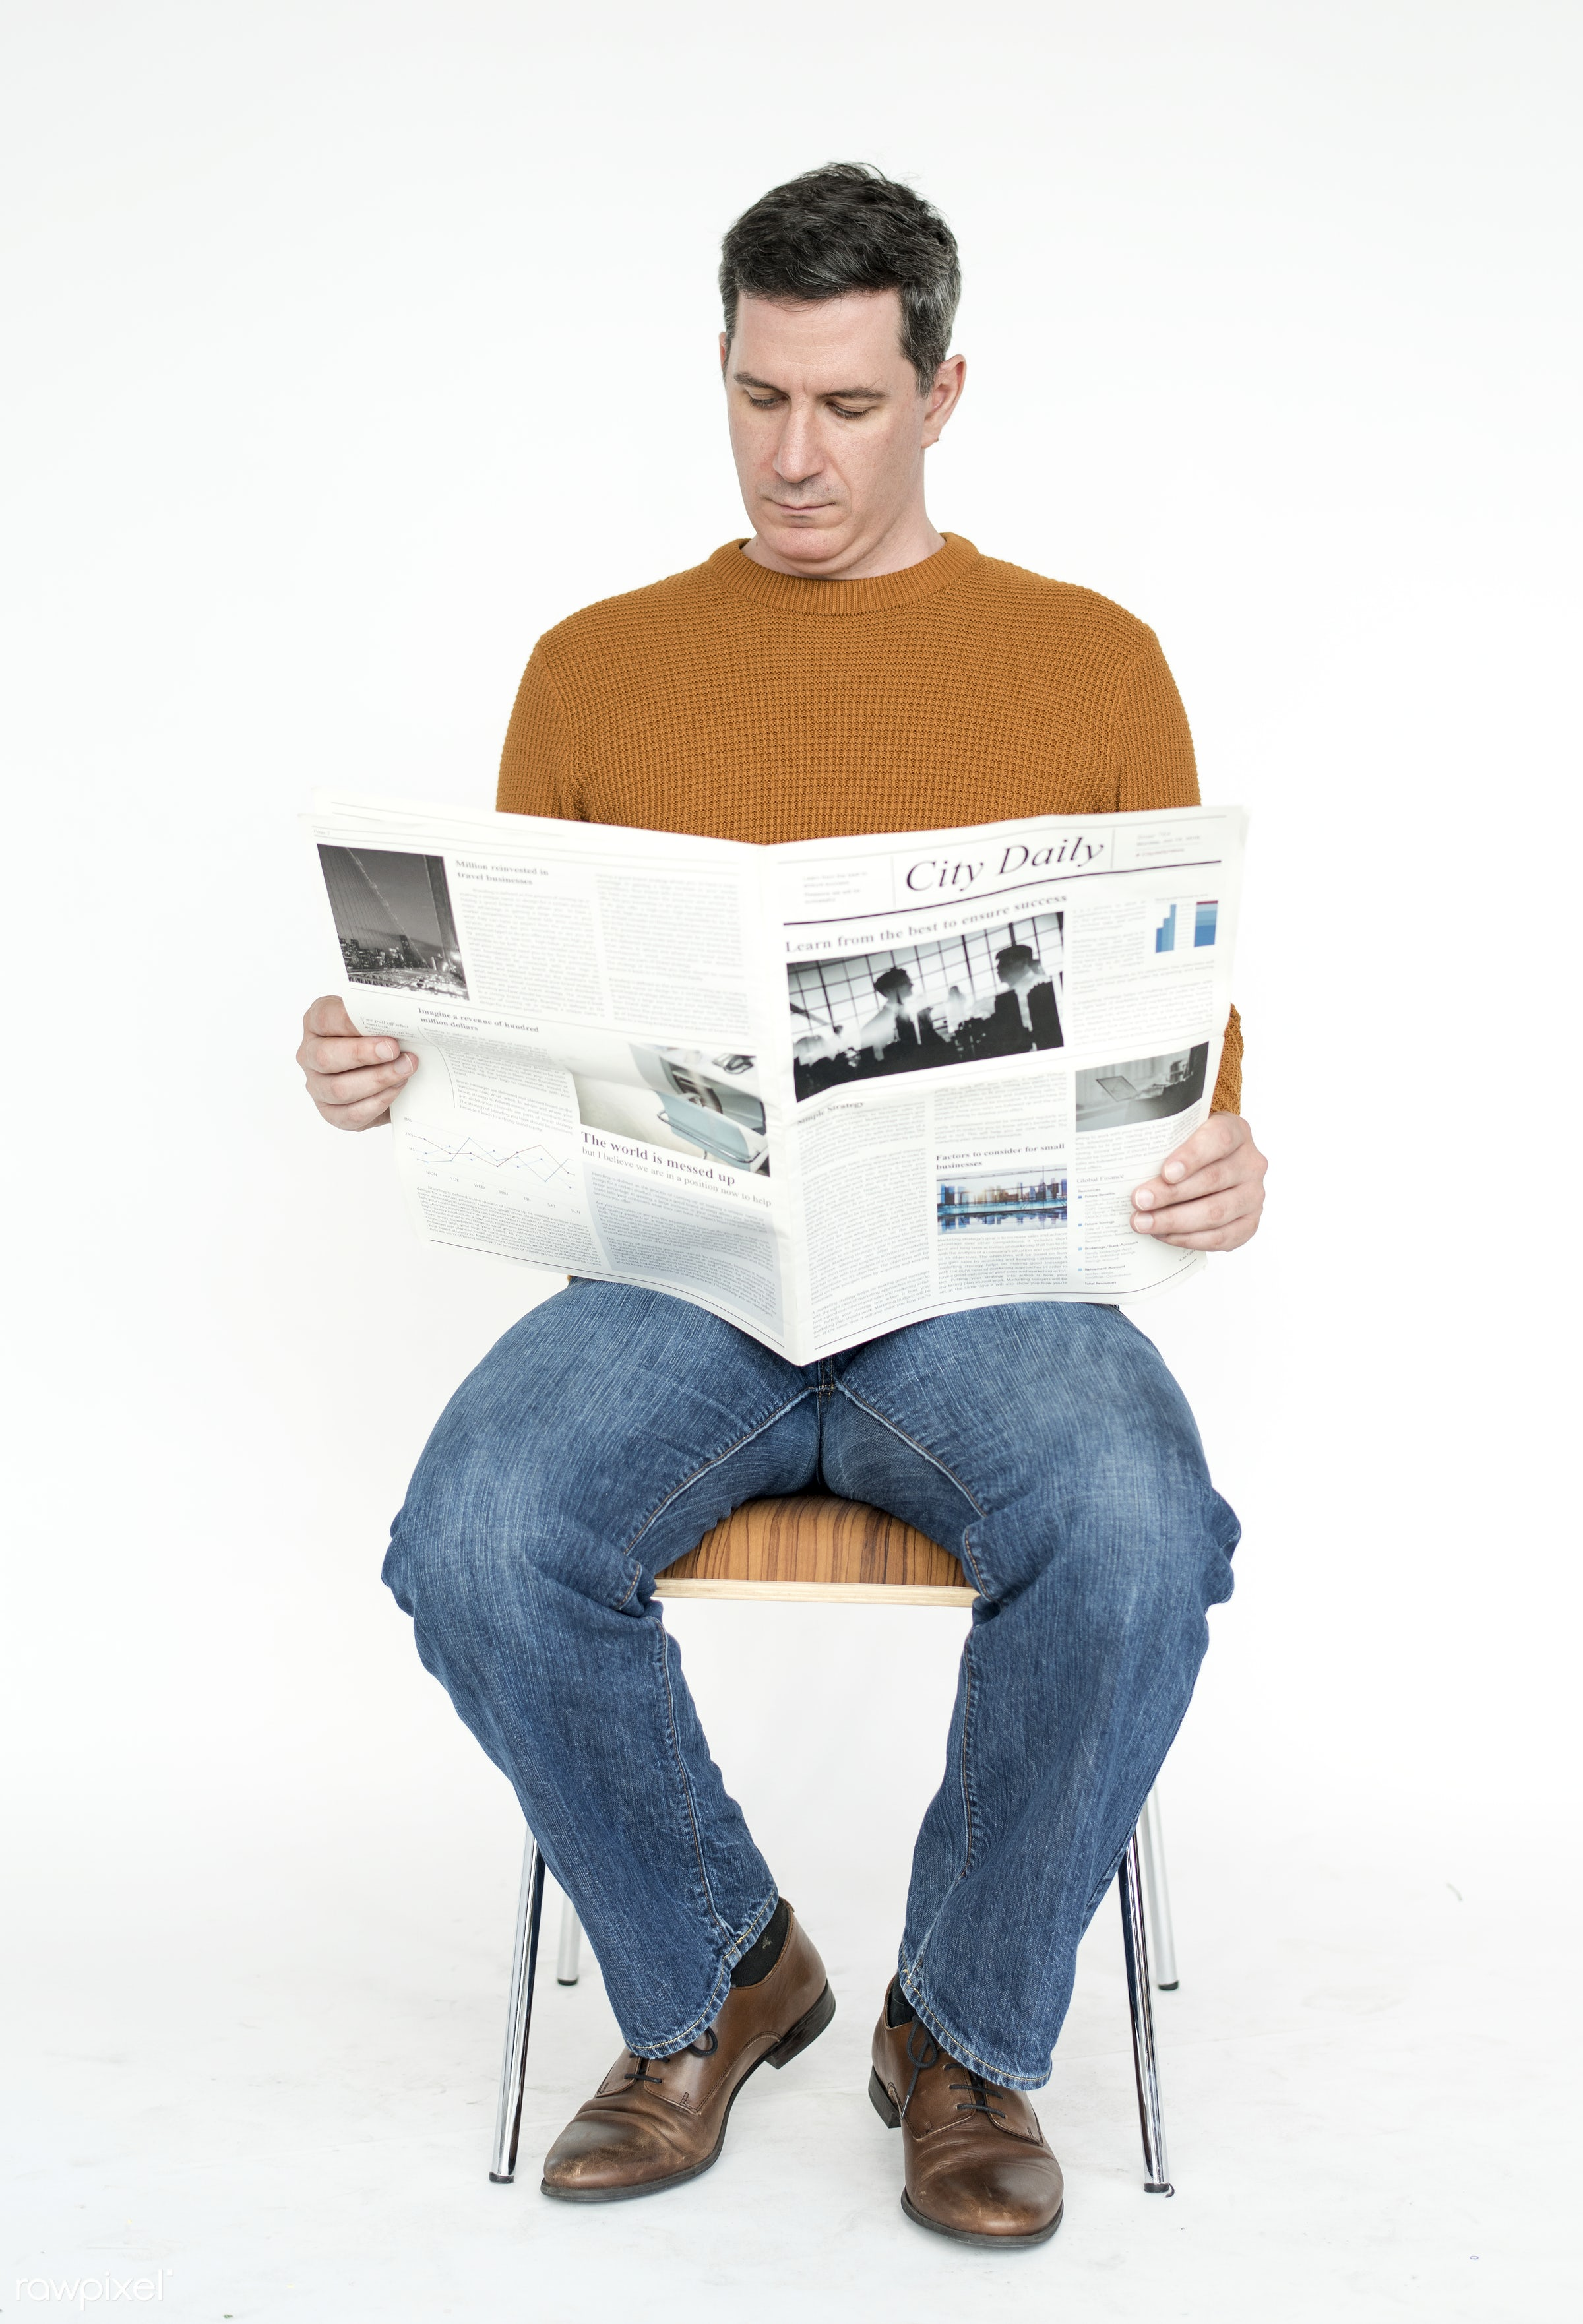 expression, studio, model, person, reading, isolated on white, race, people, style, casual, lifestyle, men, man, isolated,...